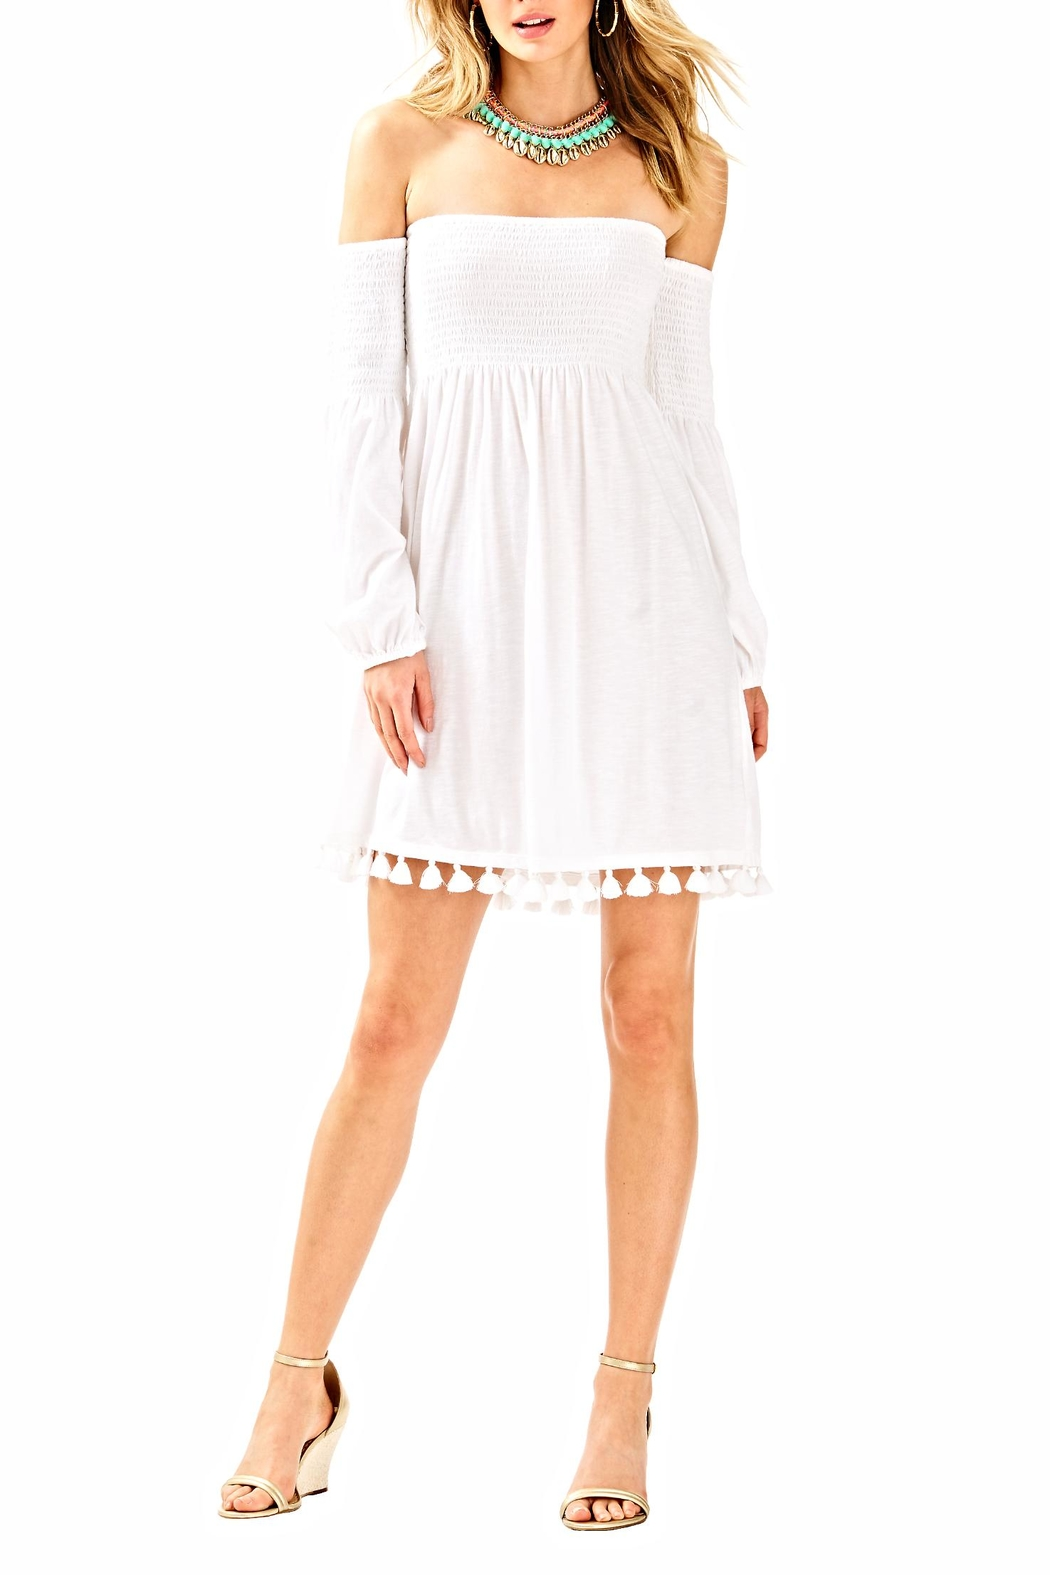 Lilly Pulitzer White Beach Dress - Back Cropped Image